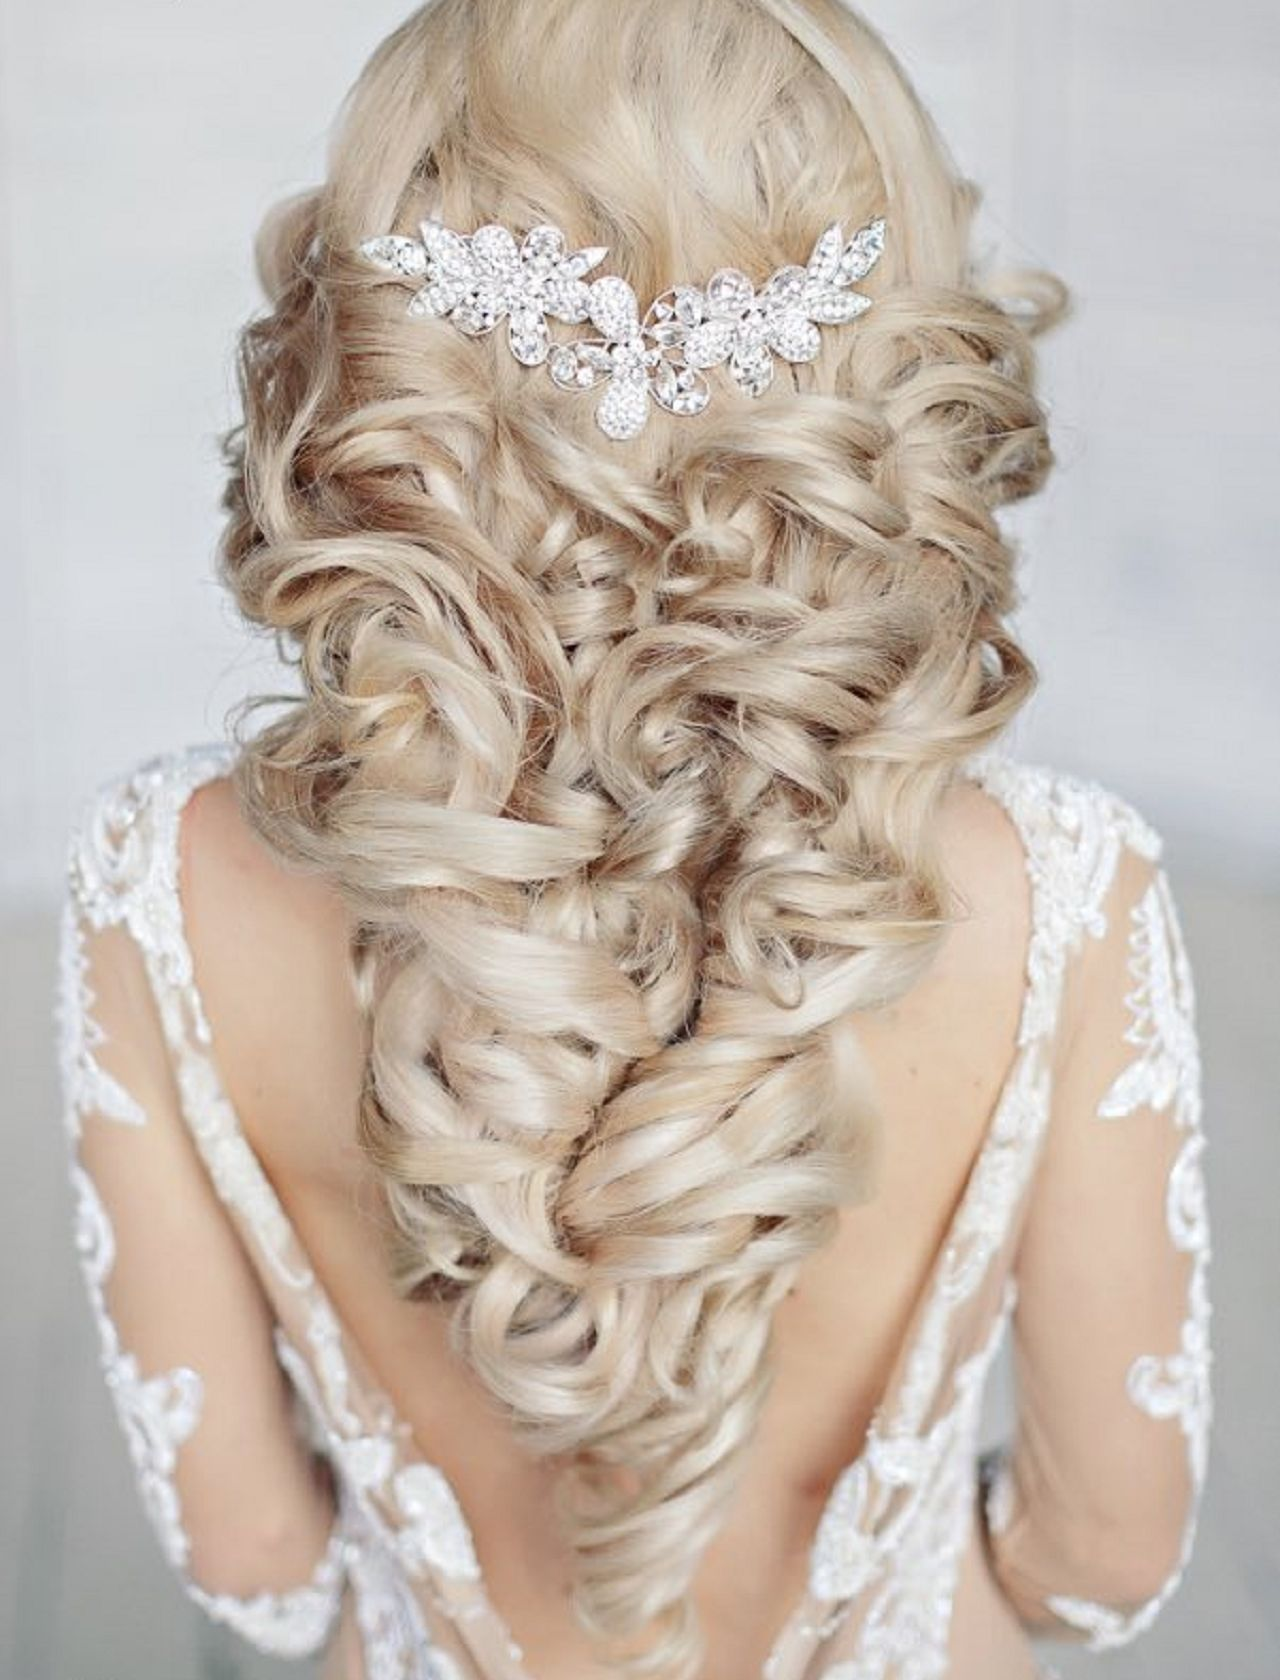 100+ Hairstyles Wedding hairstyle | wedding | Pinterest | Hair style ...